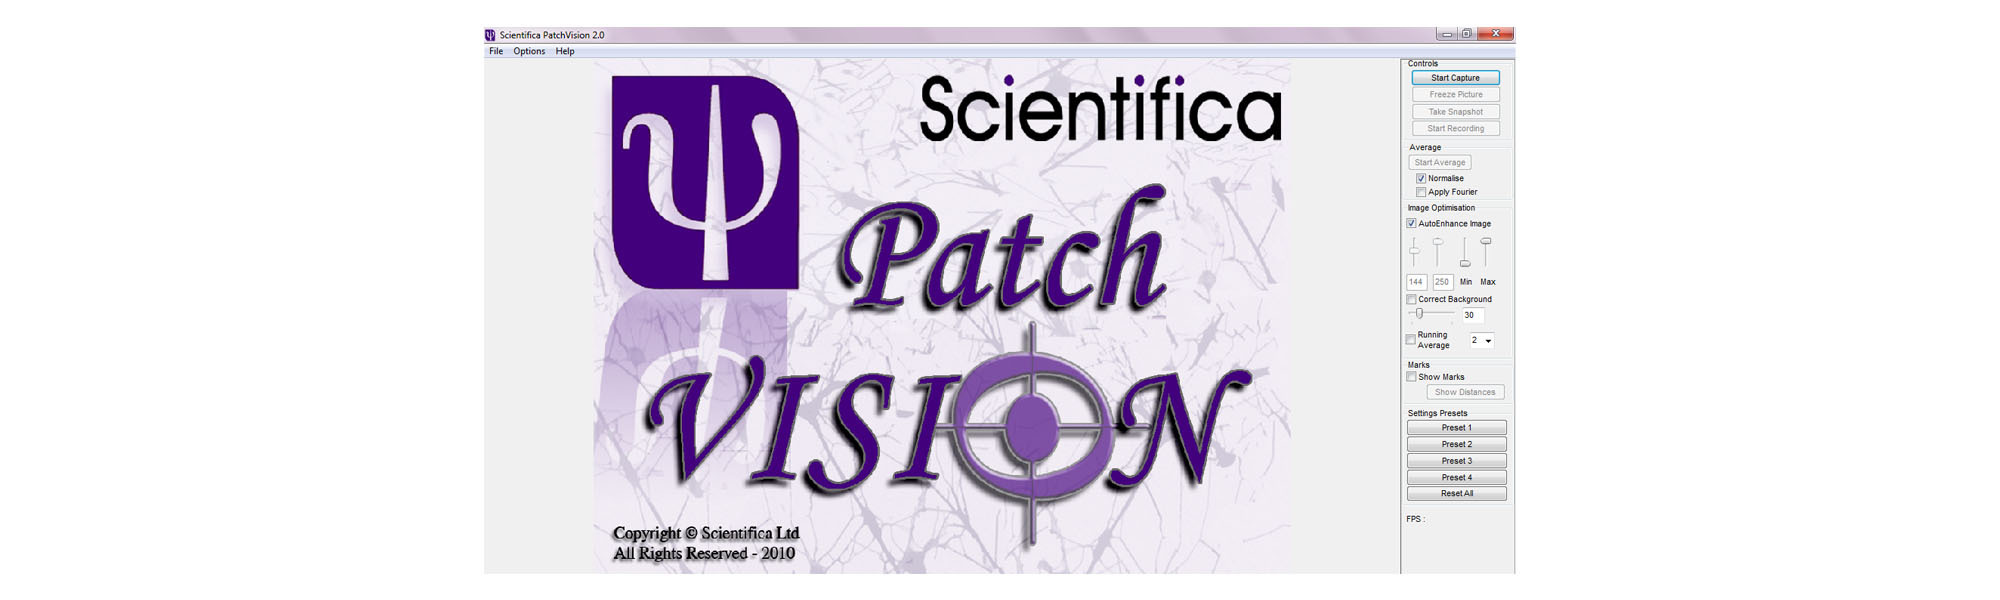 Scientifica PatchVision